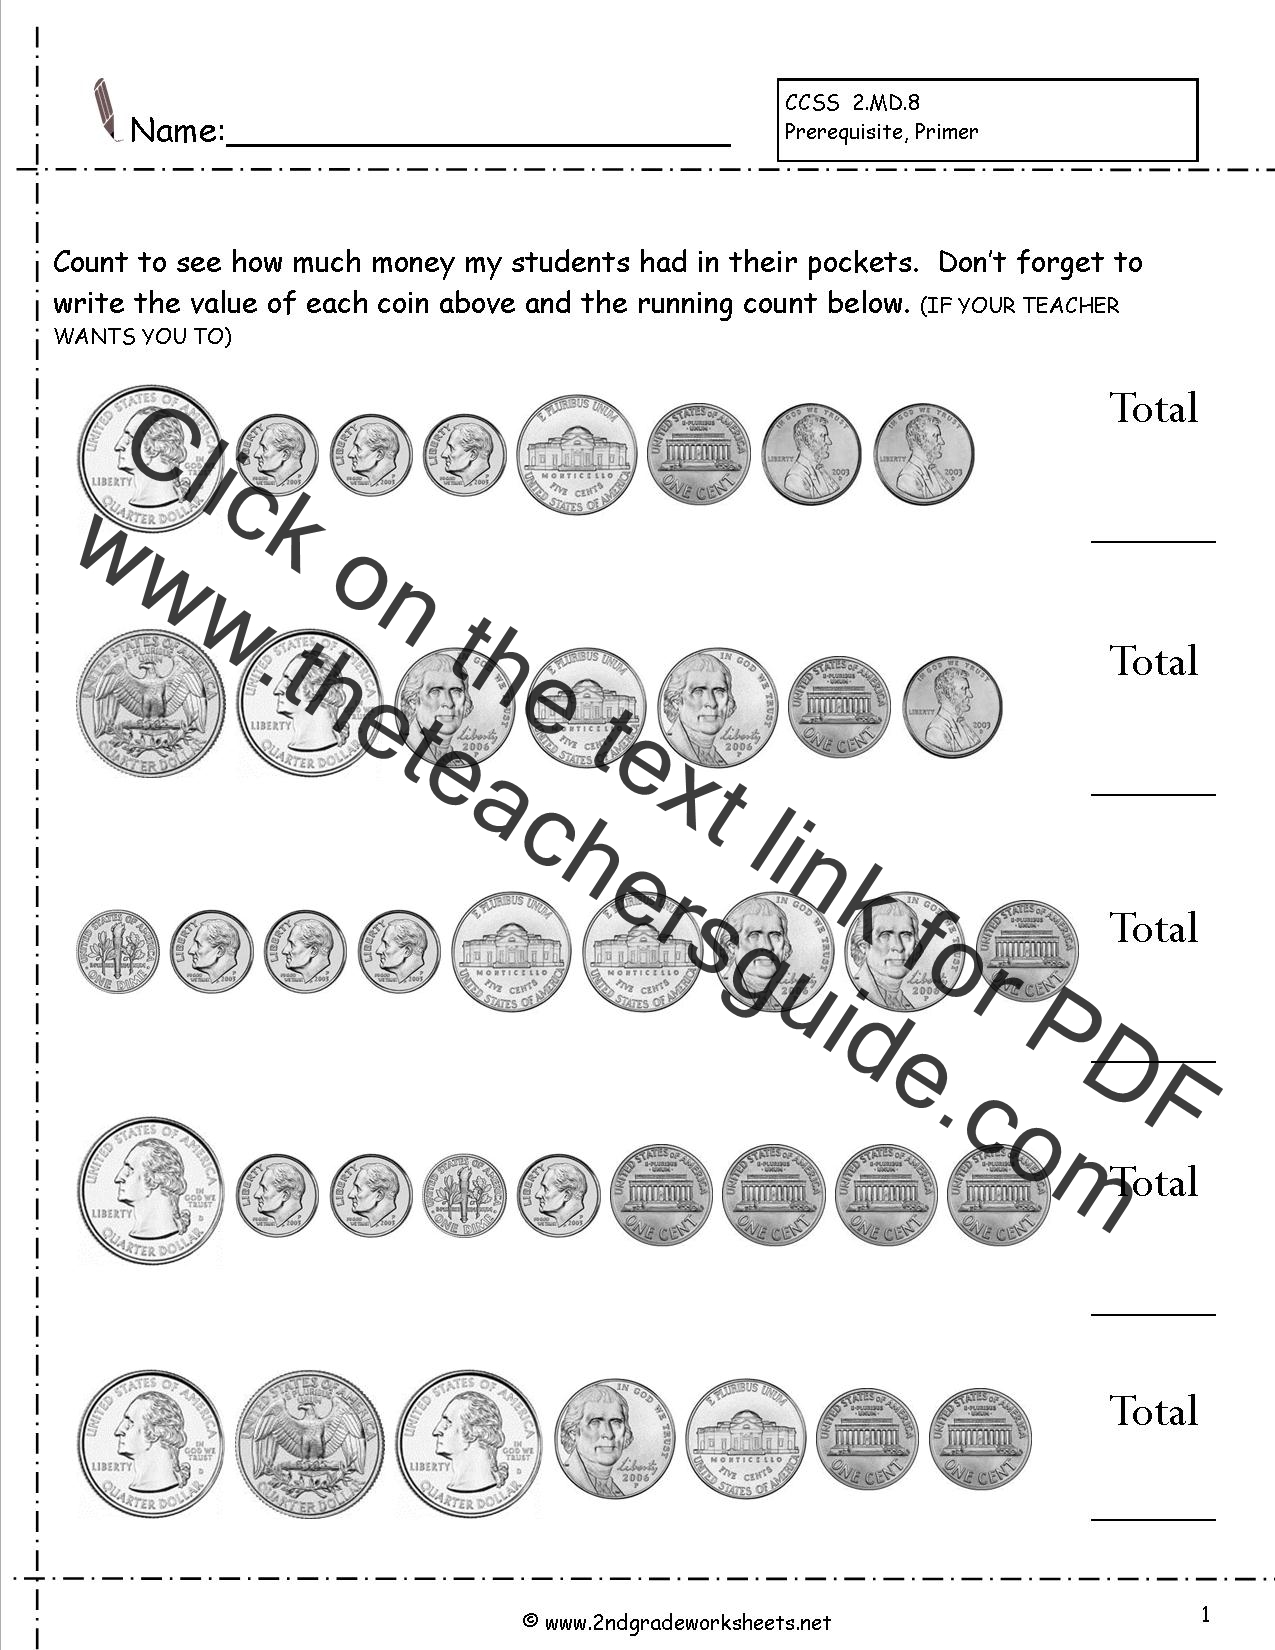 Worksheets Free Counting Money Worksheets counting coins and money worksheets printouts with quarters